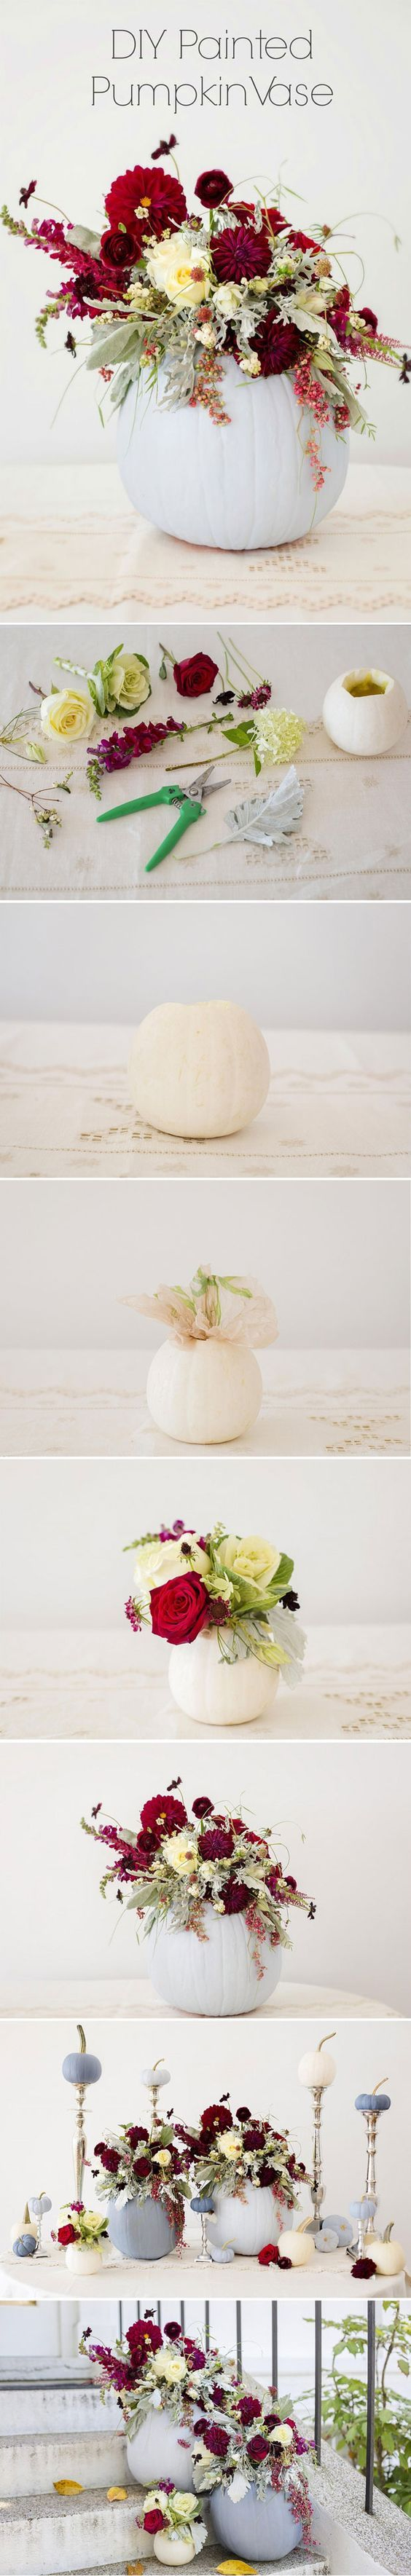 100 DIY Wedding Centerpieces on a Budget | Vase ideas, Halloween ...